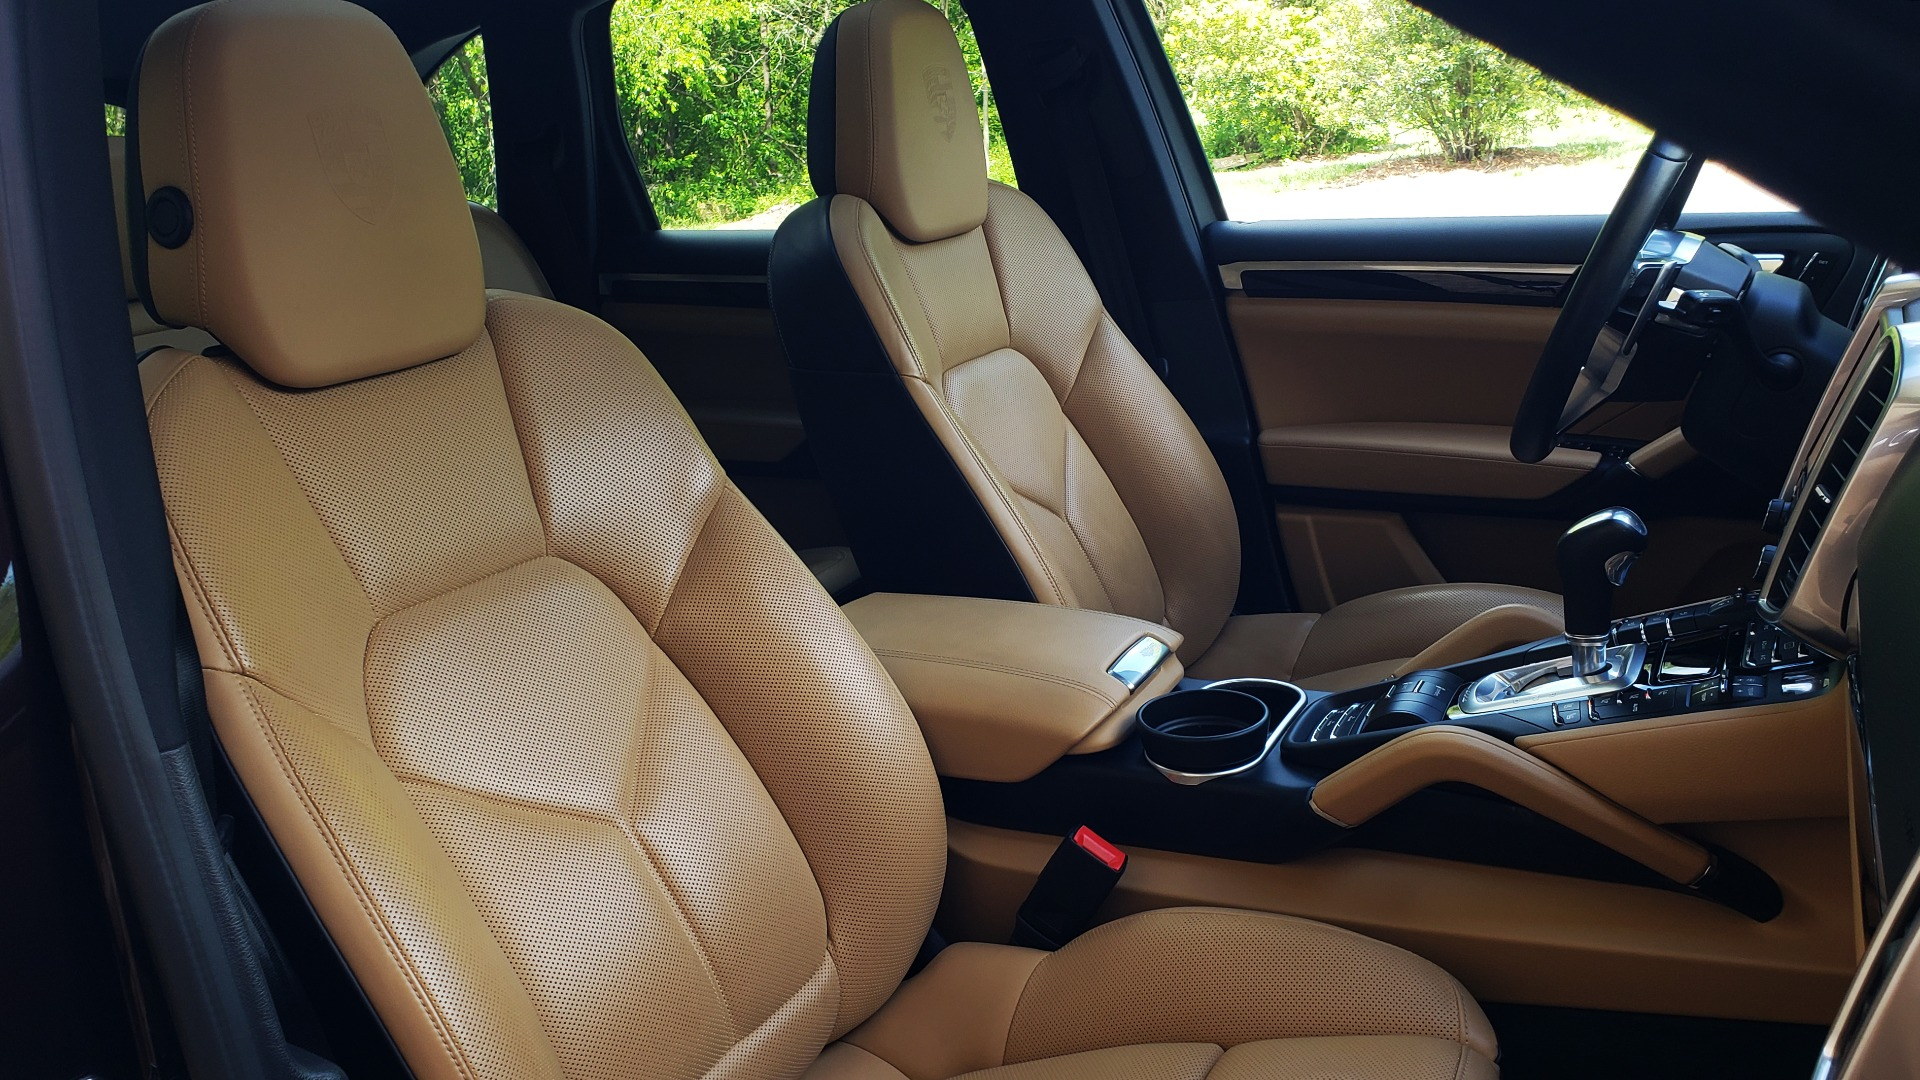 Used 2017 Porsche CAYENNE S E-HYBRID PLATINUM EDITION for sale Sold at Formula Imports in Charlotte NC 28227 74